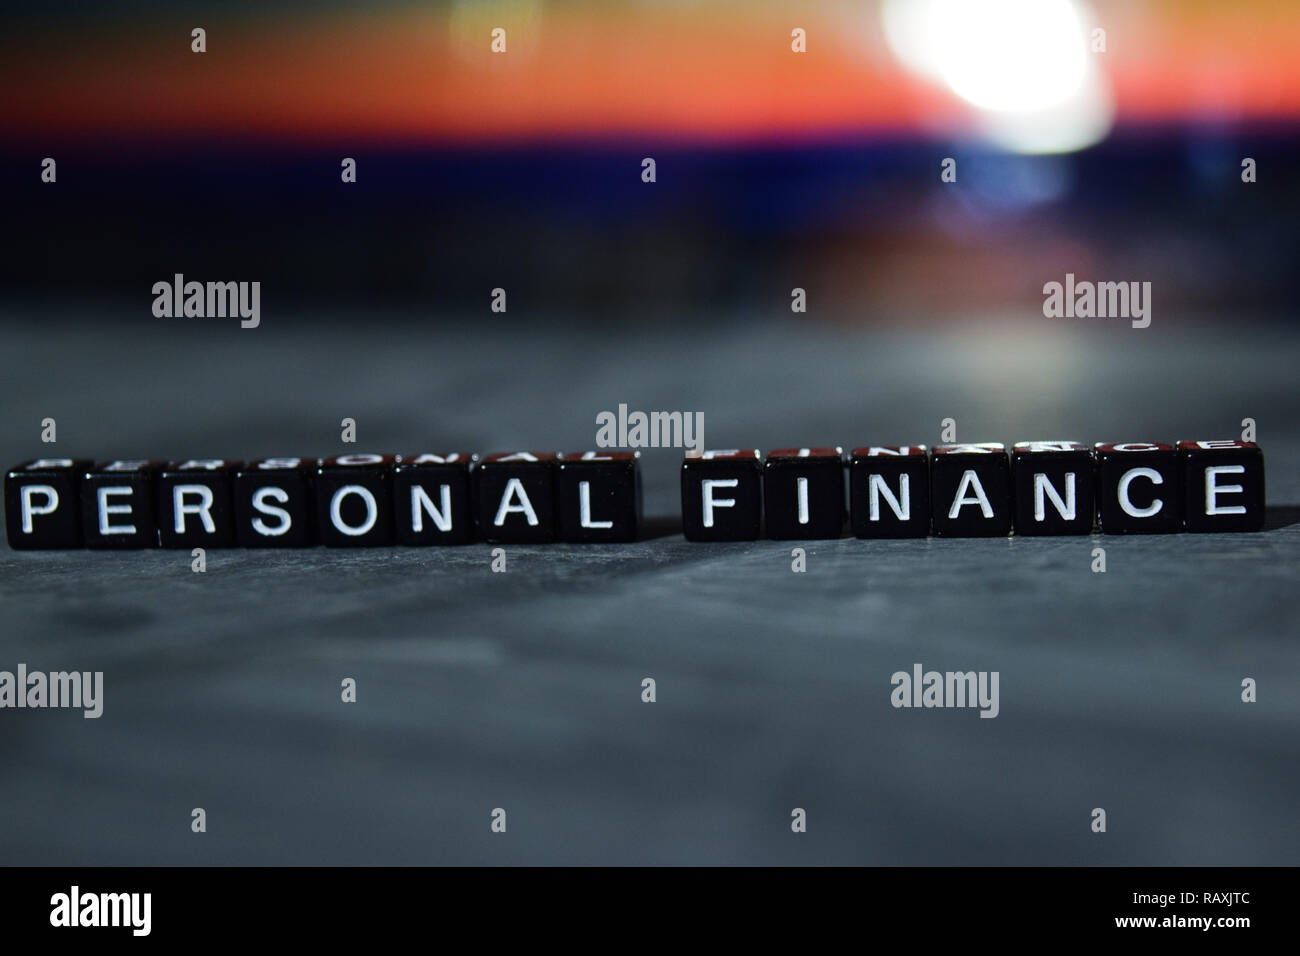 Personal finance on wooden blocks. Business and finance concept. Cross processed image with bokeh background - Stock Image